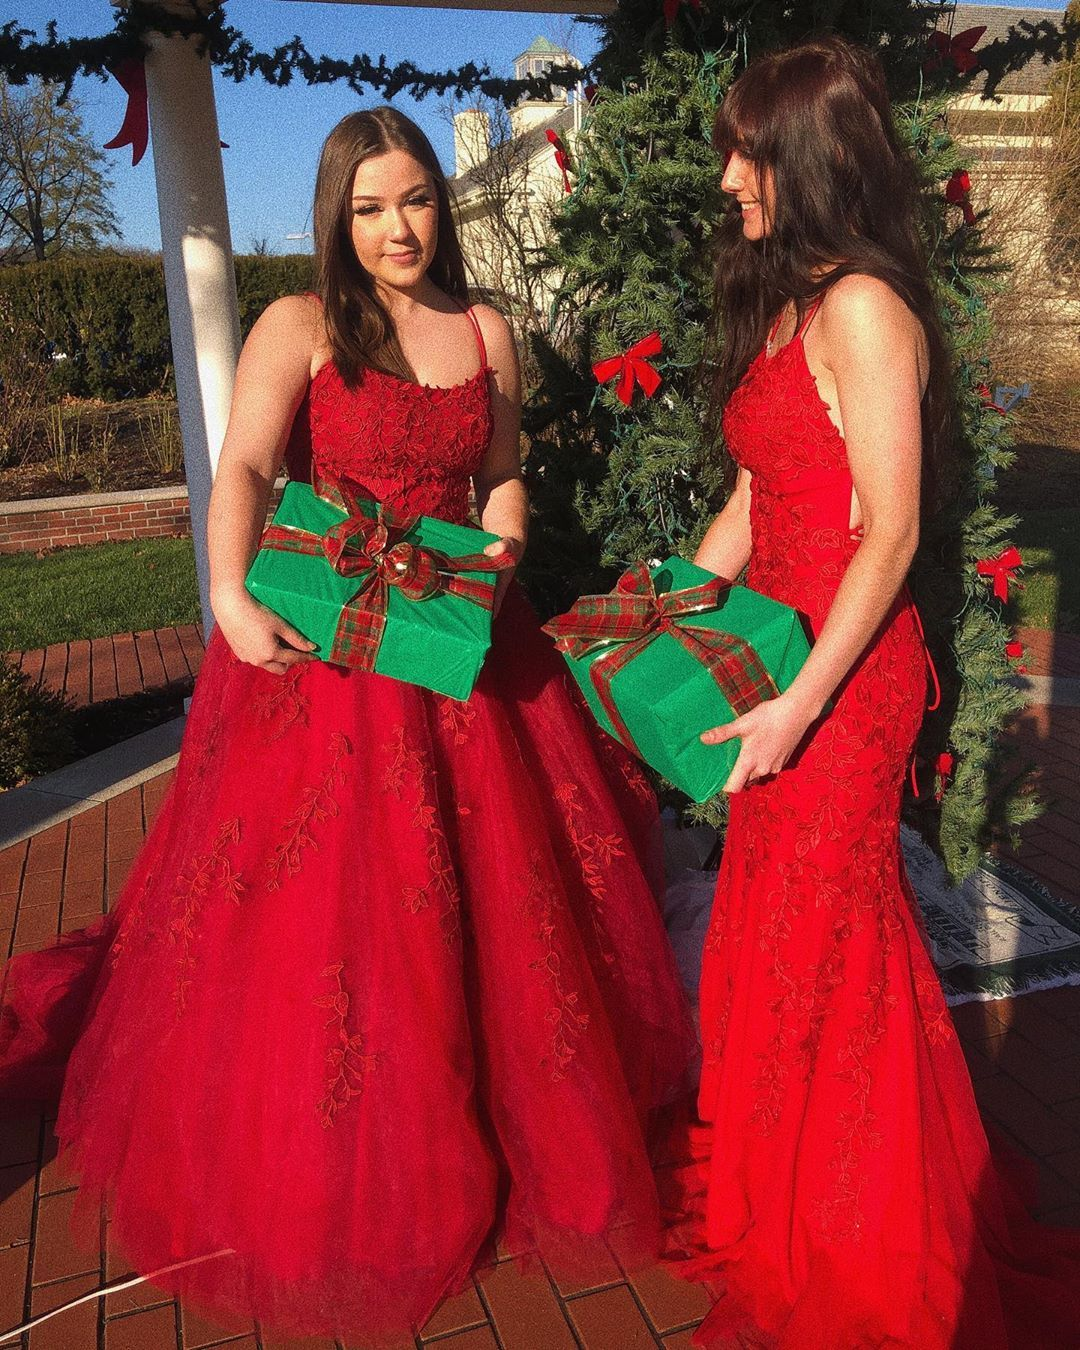 gorgeous red lace appliques long prom dresses for Christmas #christmasdress #chrstimasparty #reddresses #ballgown #formaldress